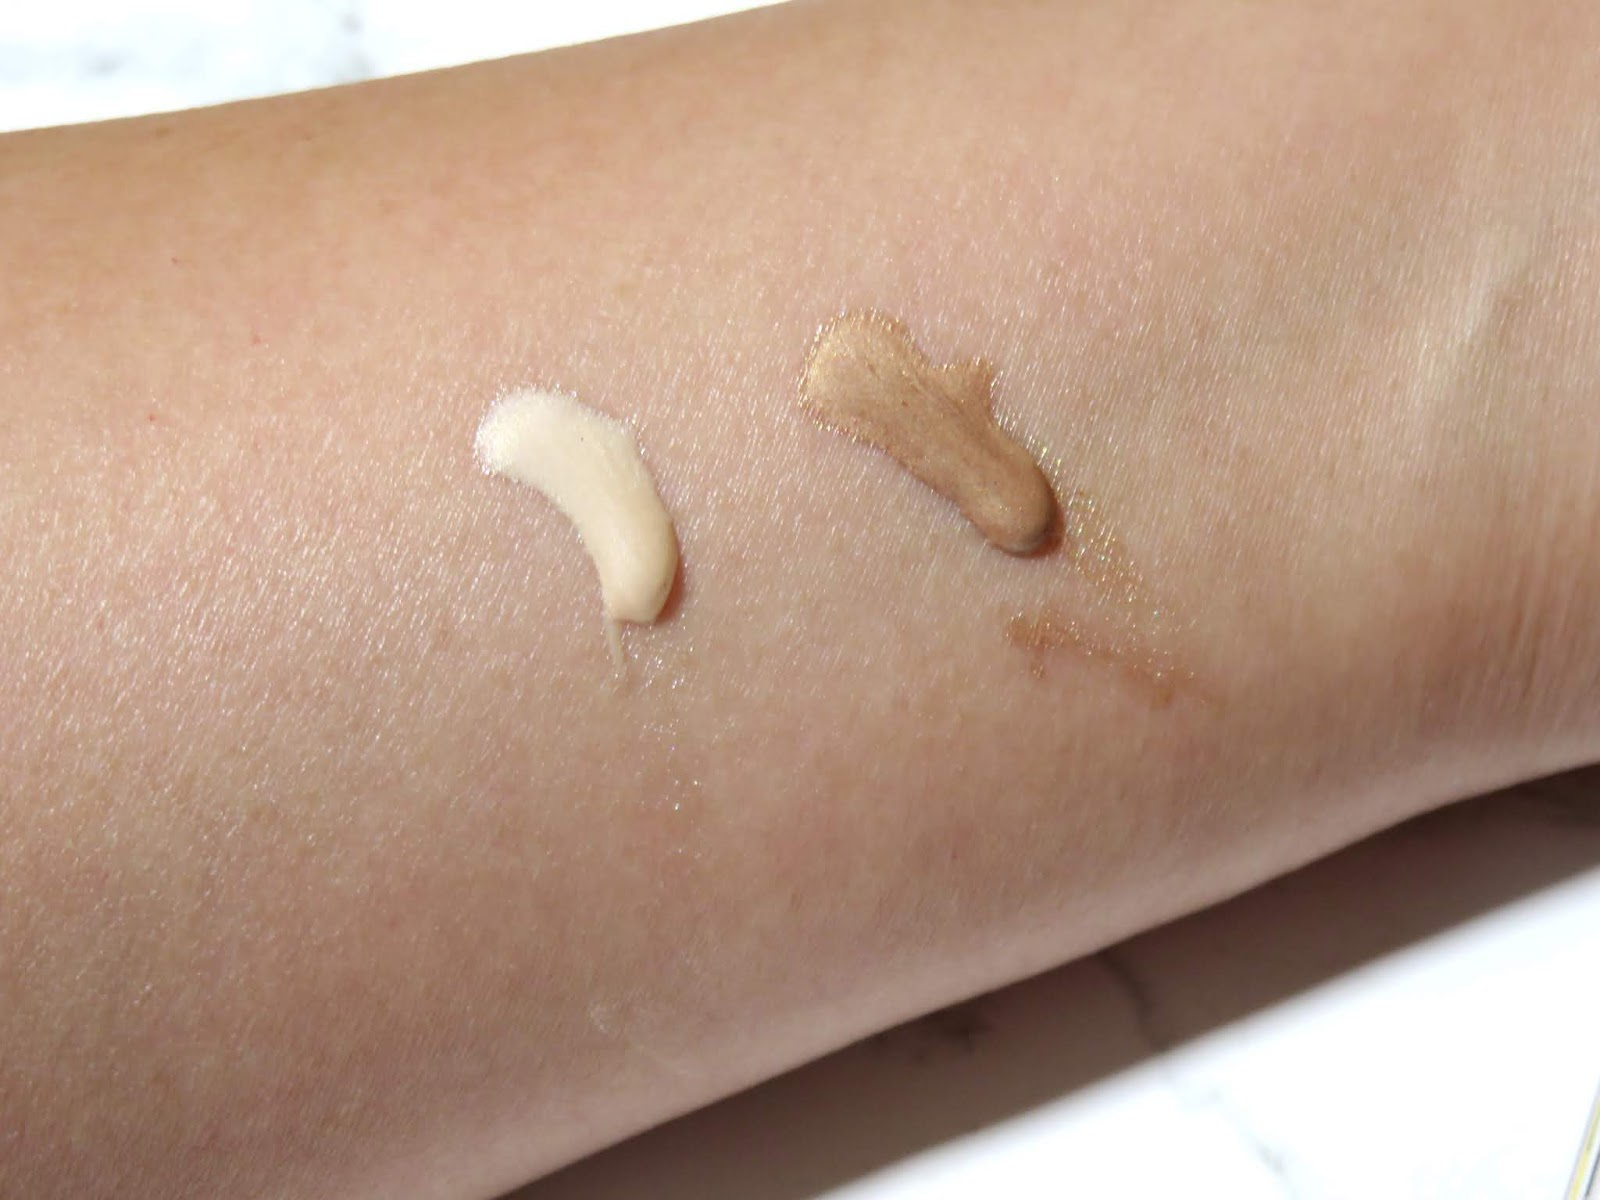 Chanel LES BEIGES Sheer Healthy Glow Highlighting Fluid Swatches